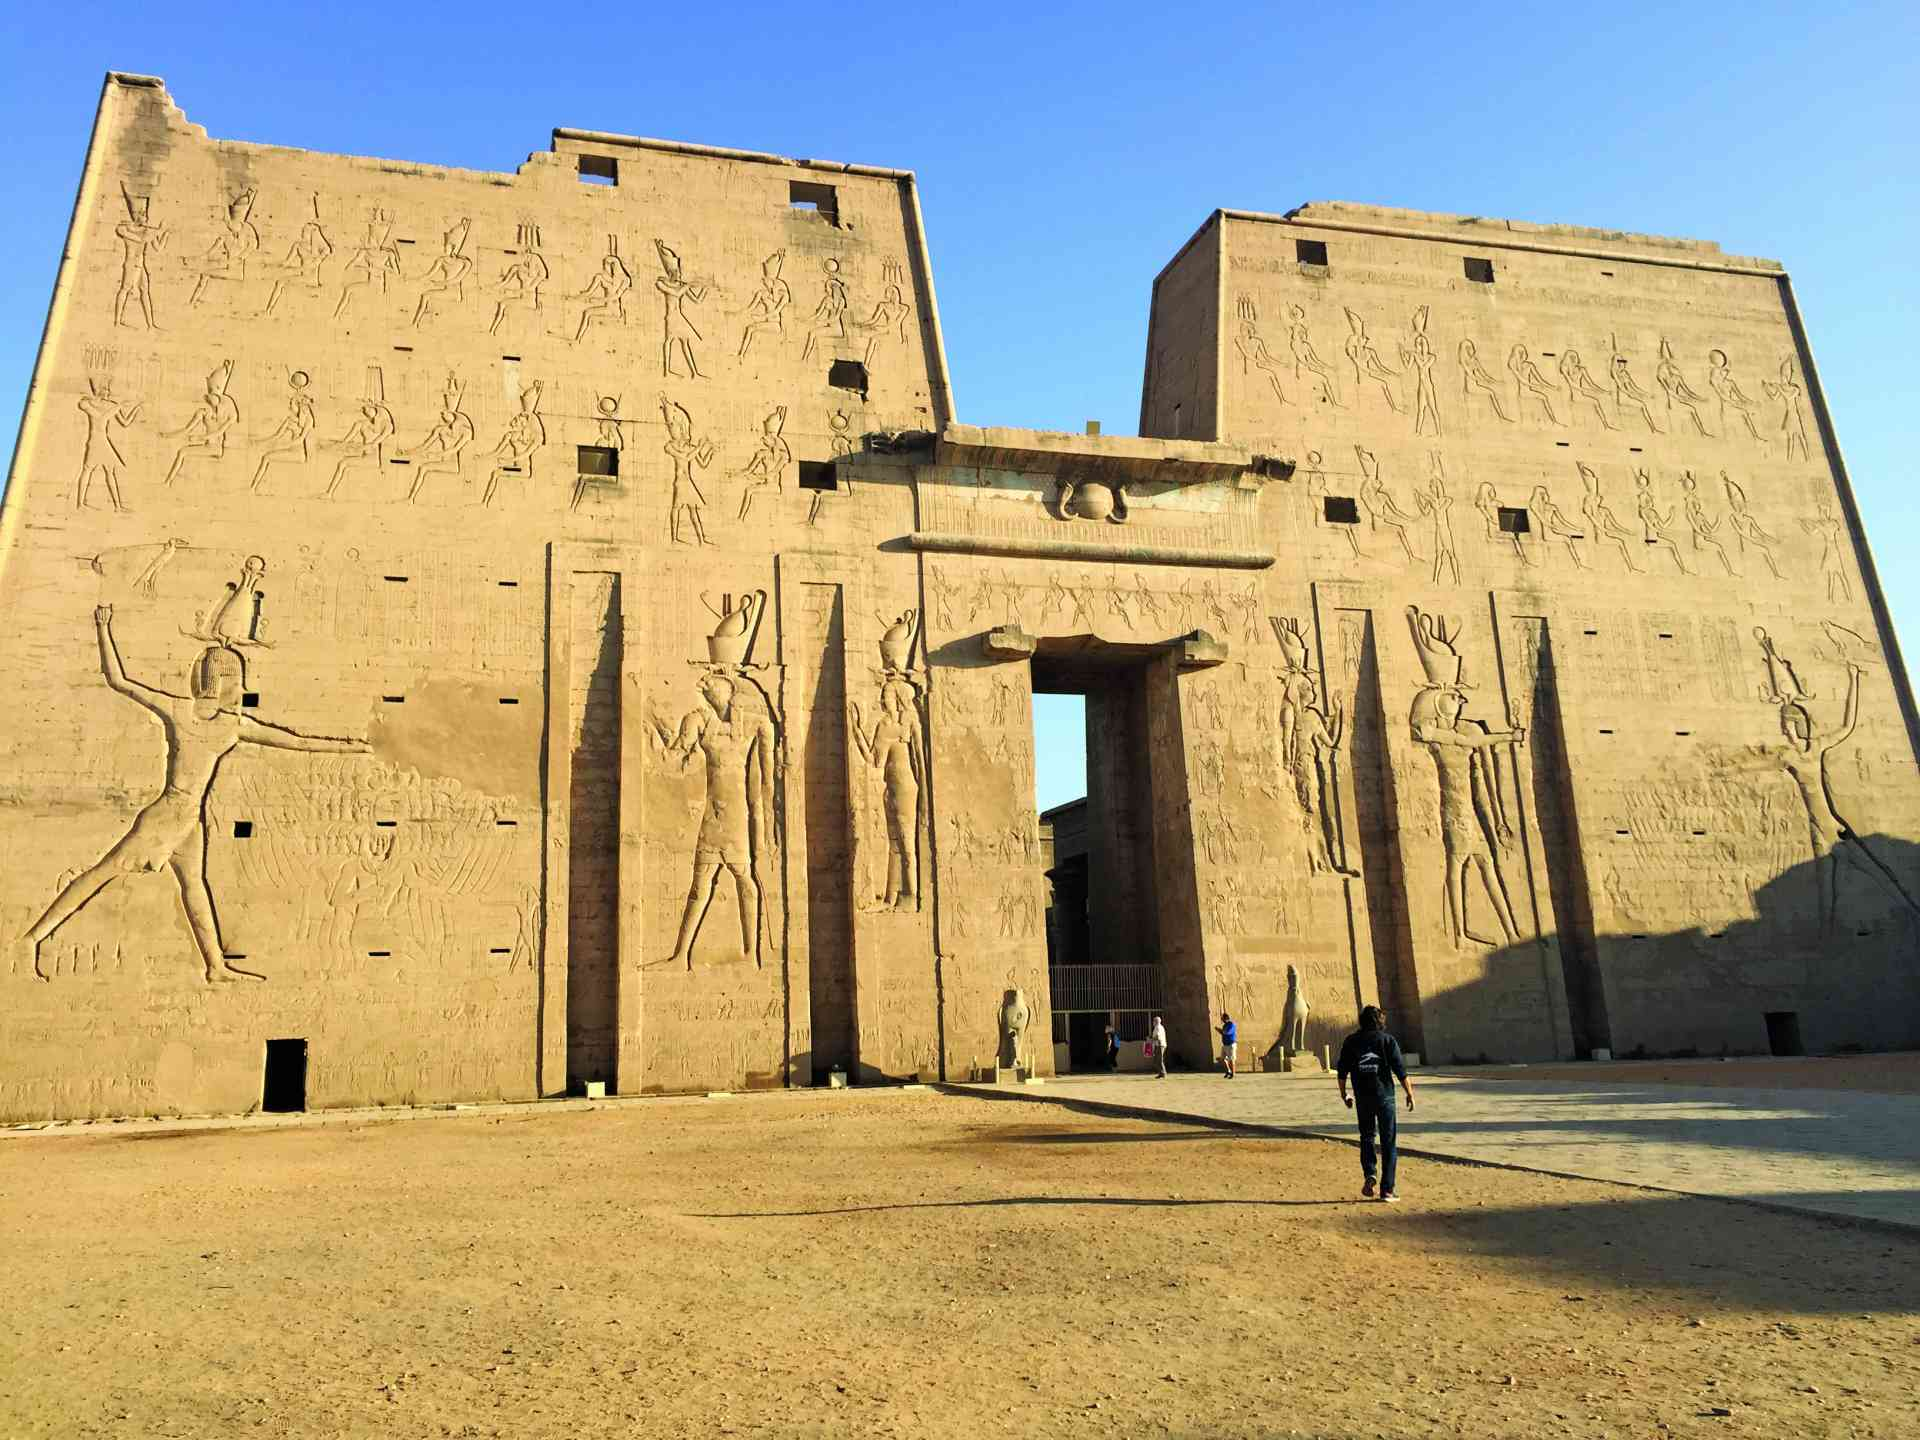 Temple of Horus, Edfu, Egypt by Zoe Francis